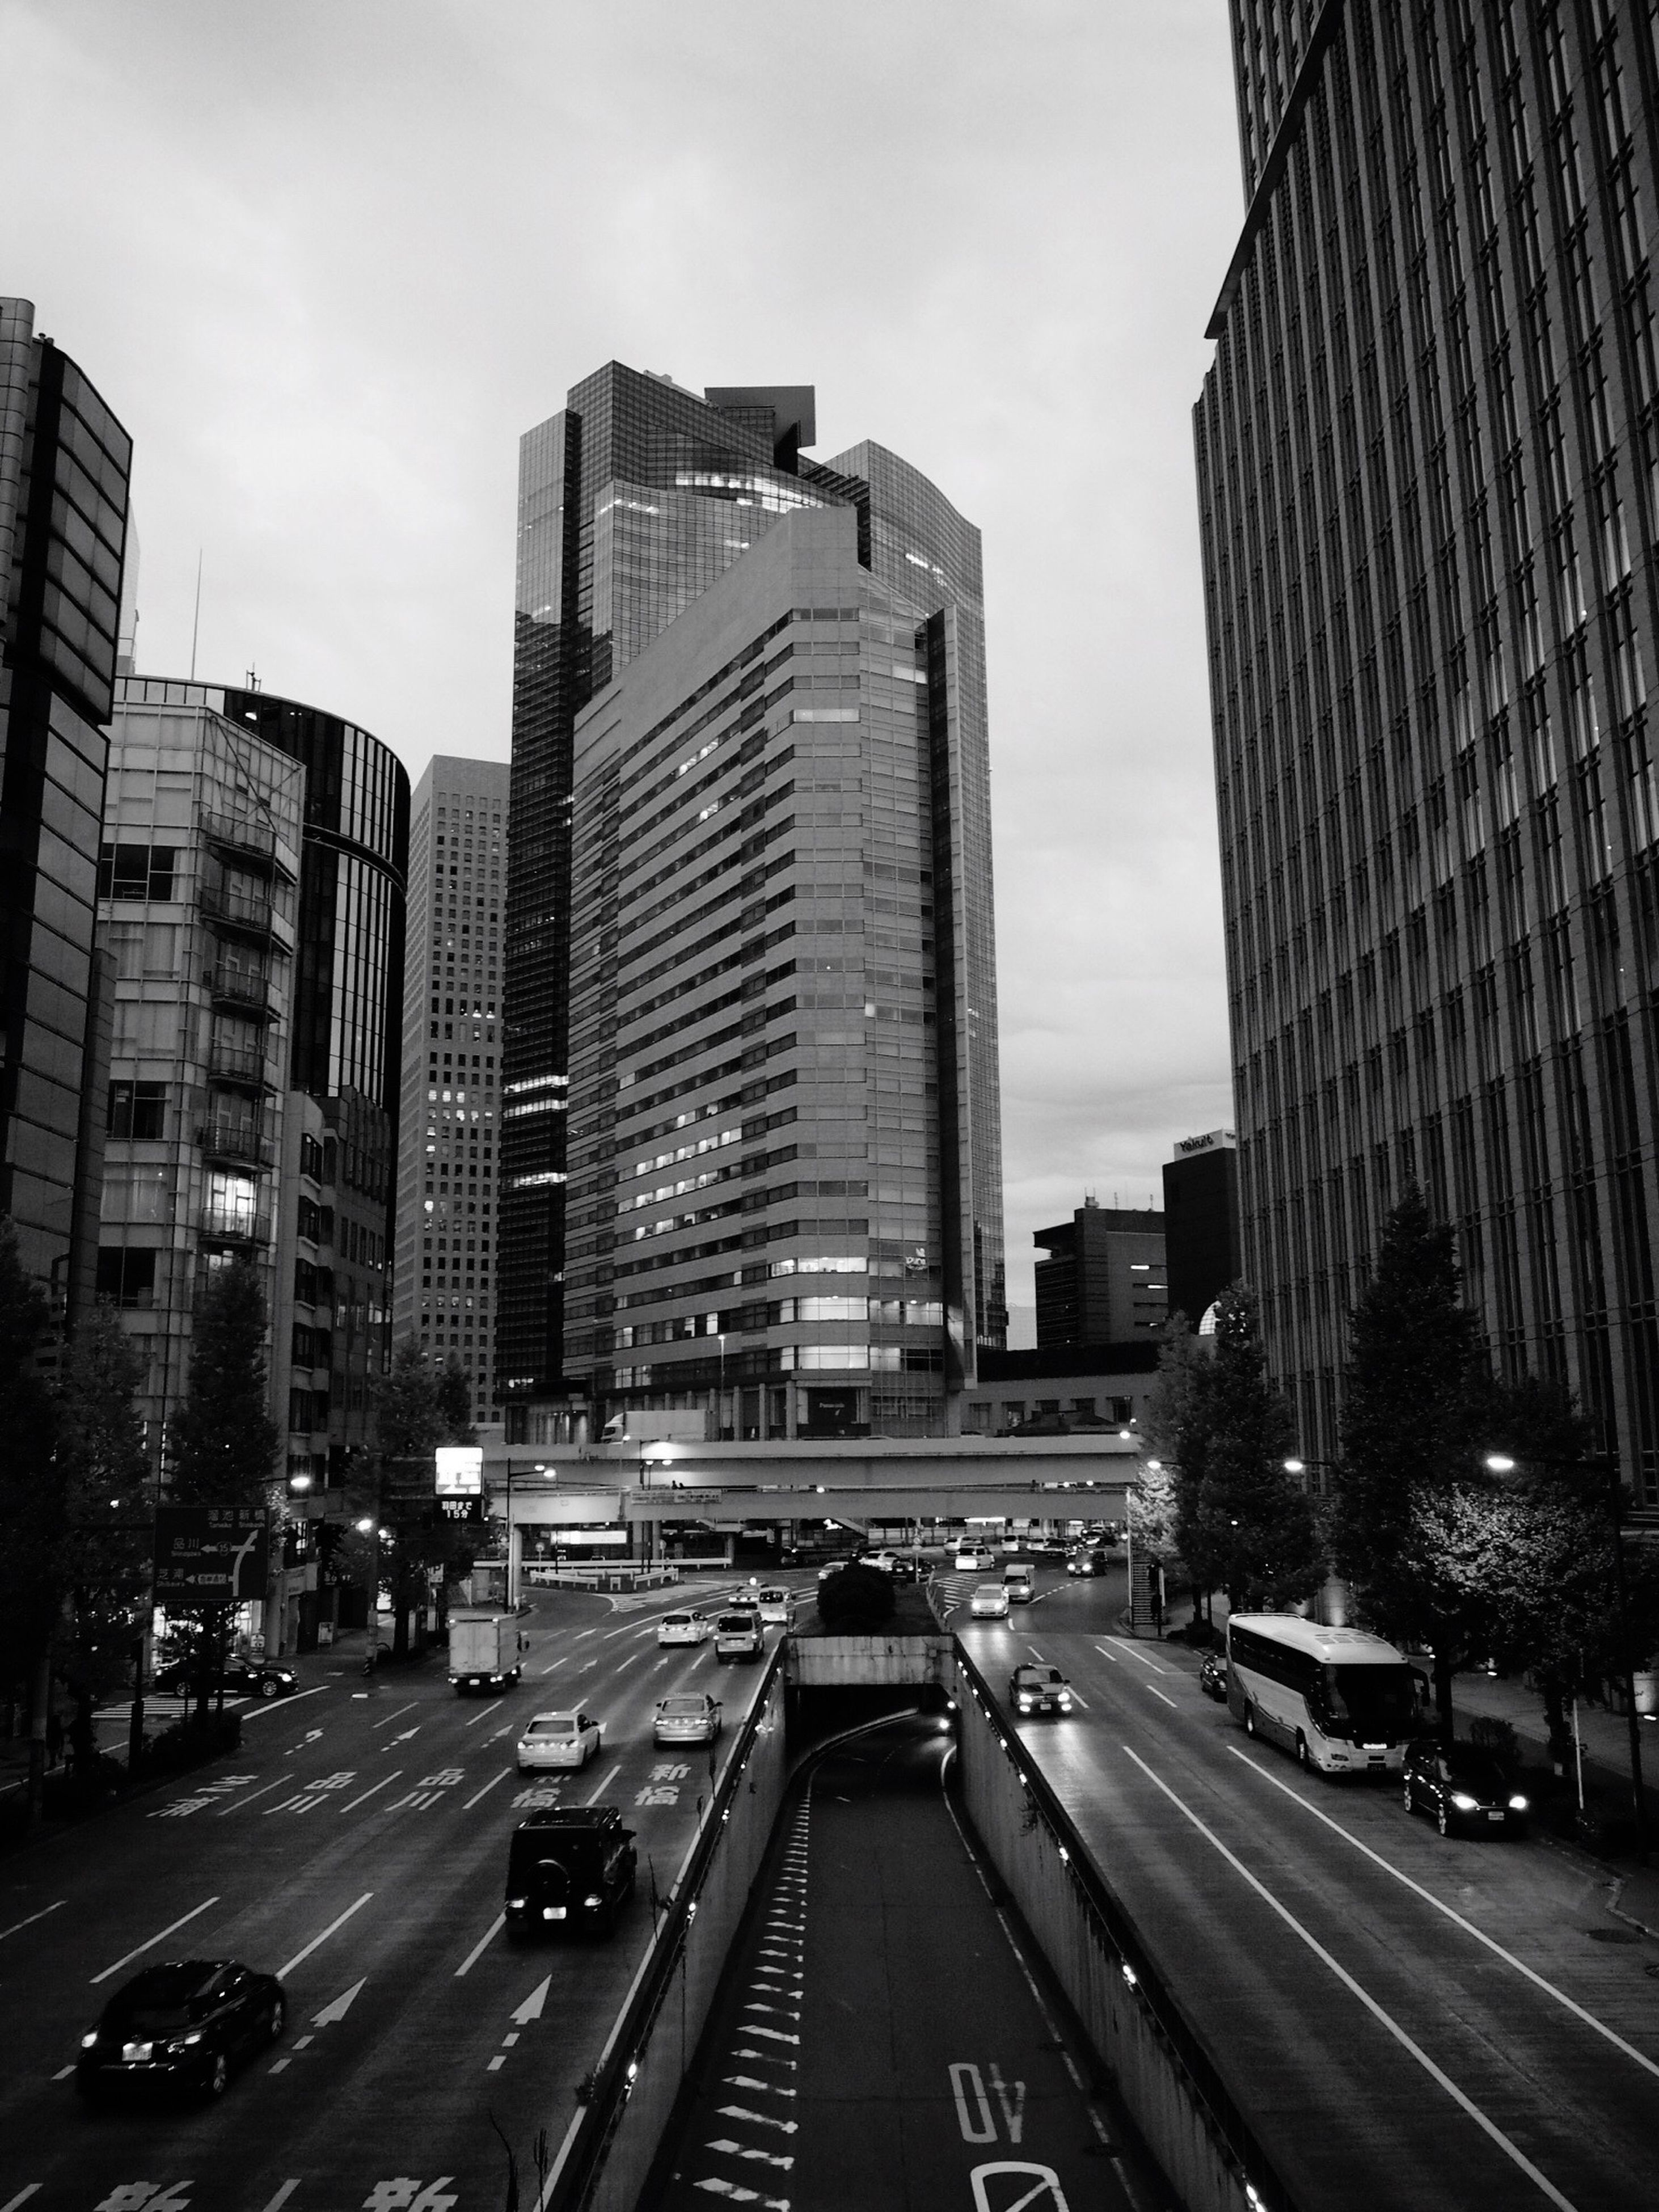 transportation, architecture, car, building exterior, city, built structure, road, land vehicle, mode of transport, street, road marking, the way forward, sky, city life, traffic, skyscraper, city street, diminishing perspective, on the move, modern